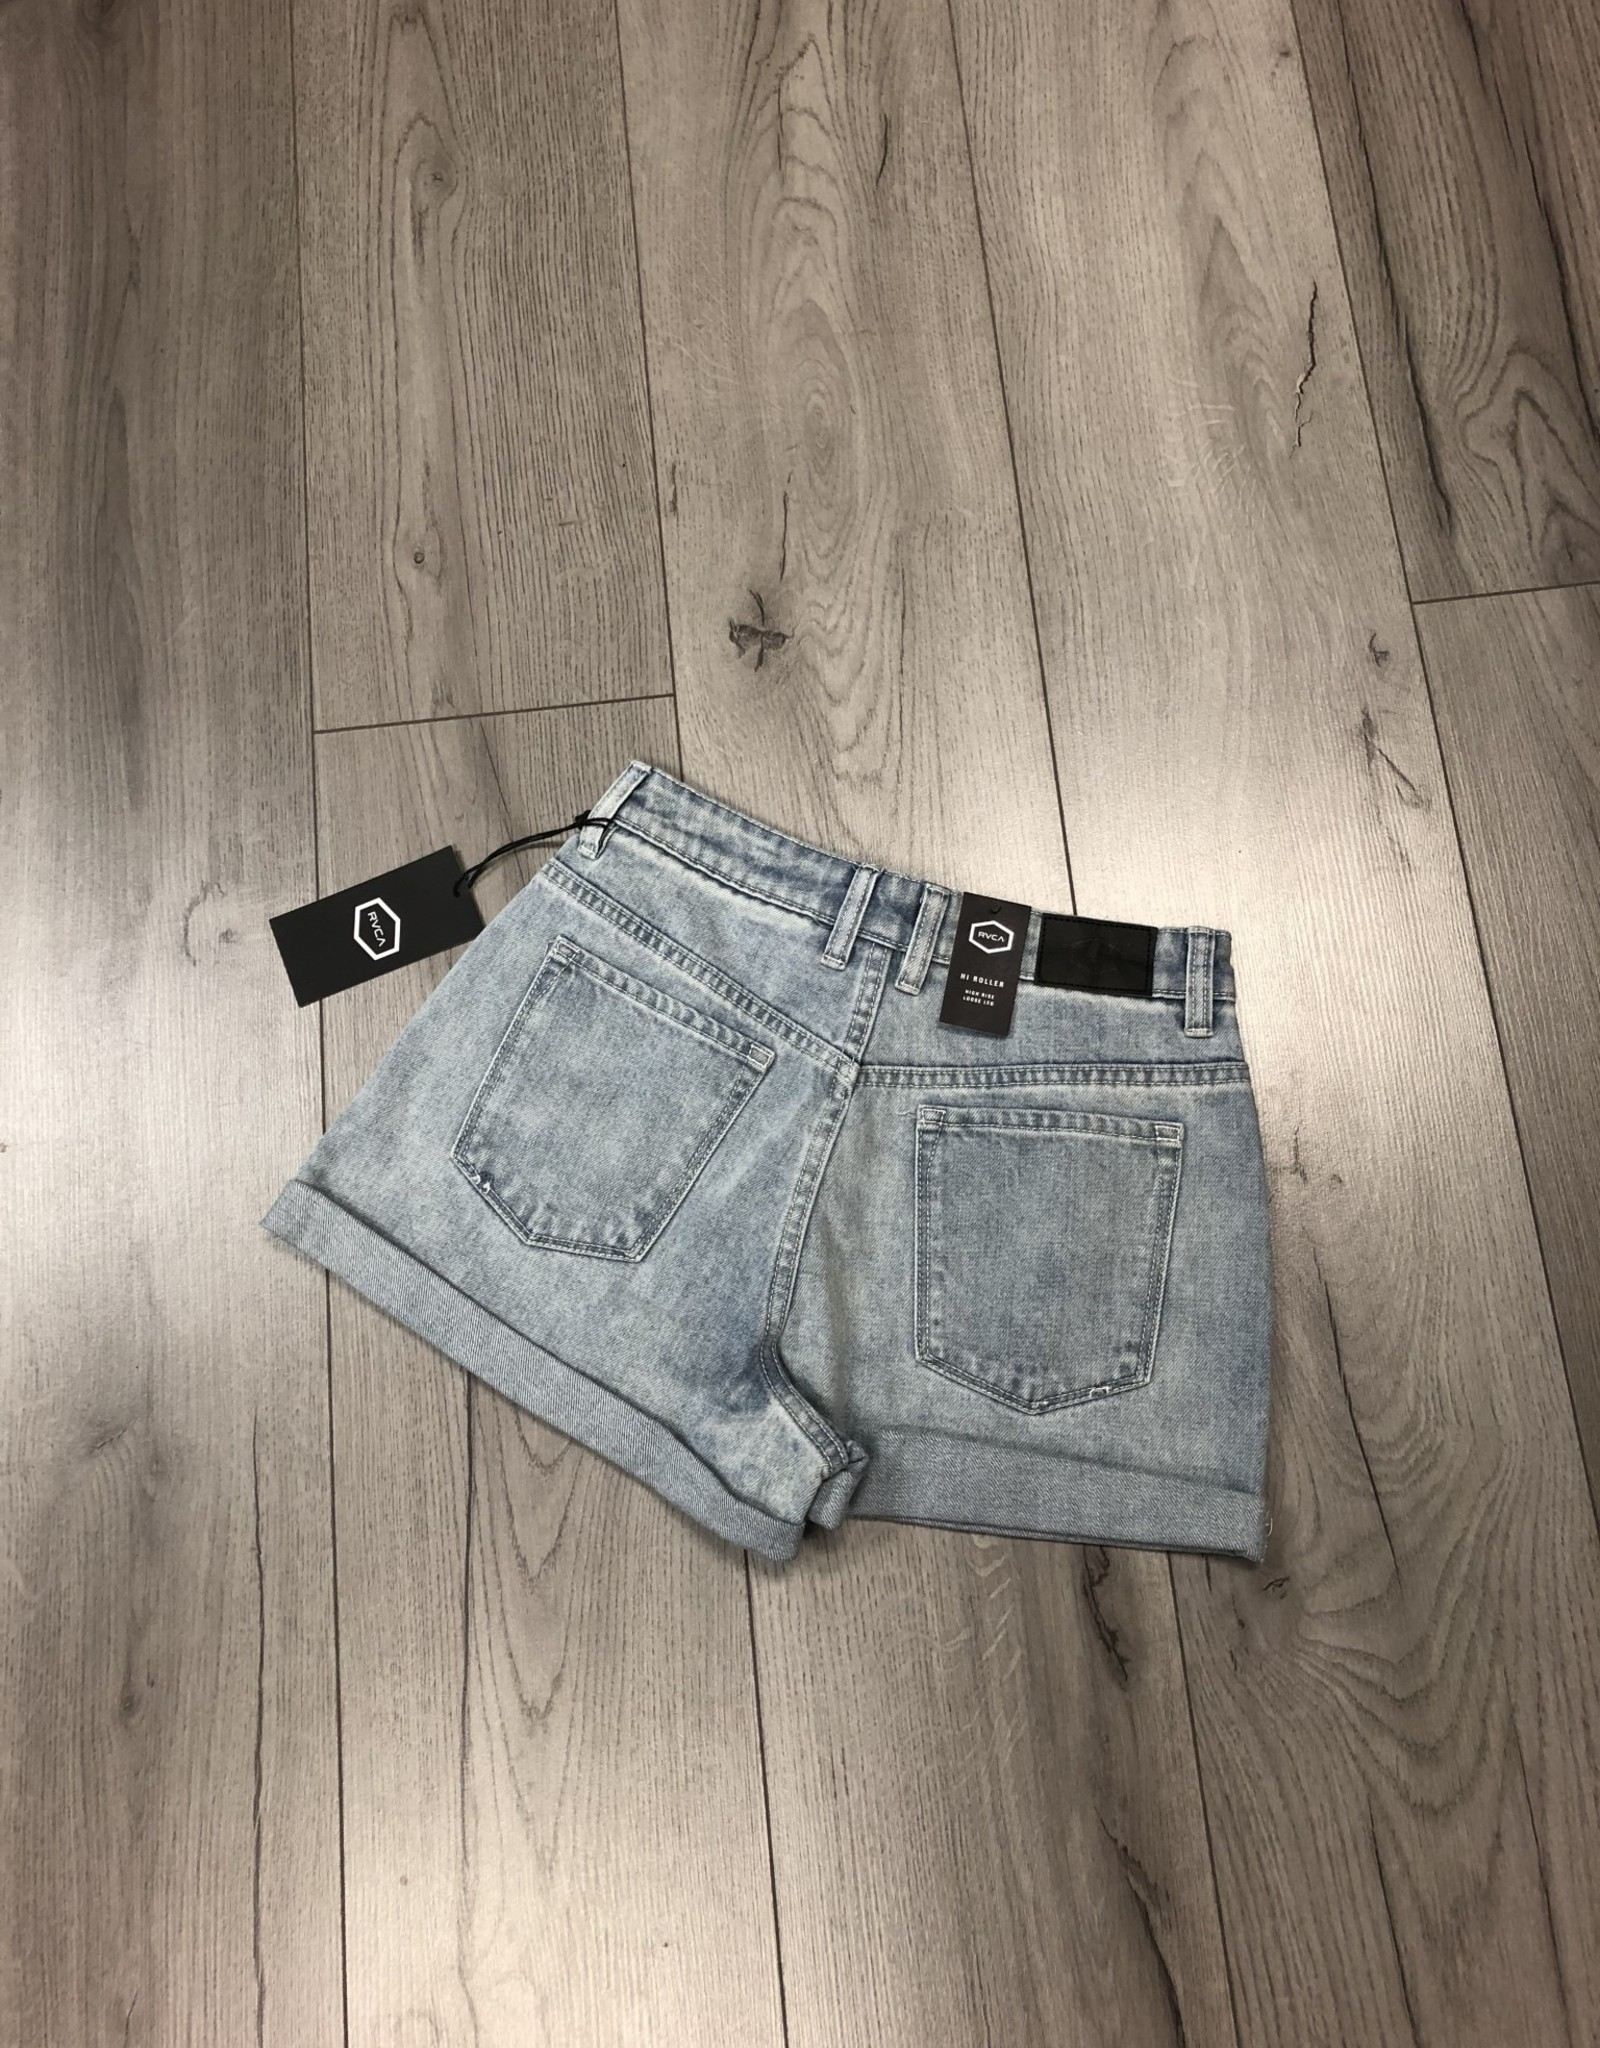 RVCA HIGH ROLLER Denim short, also available in a different shade